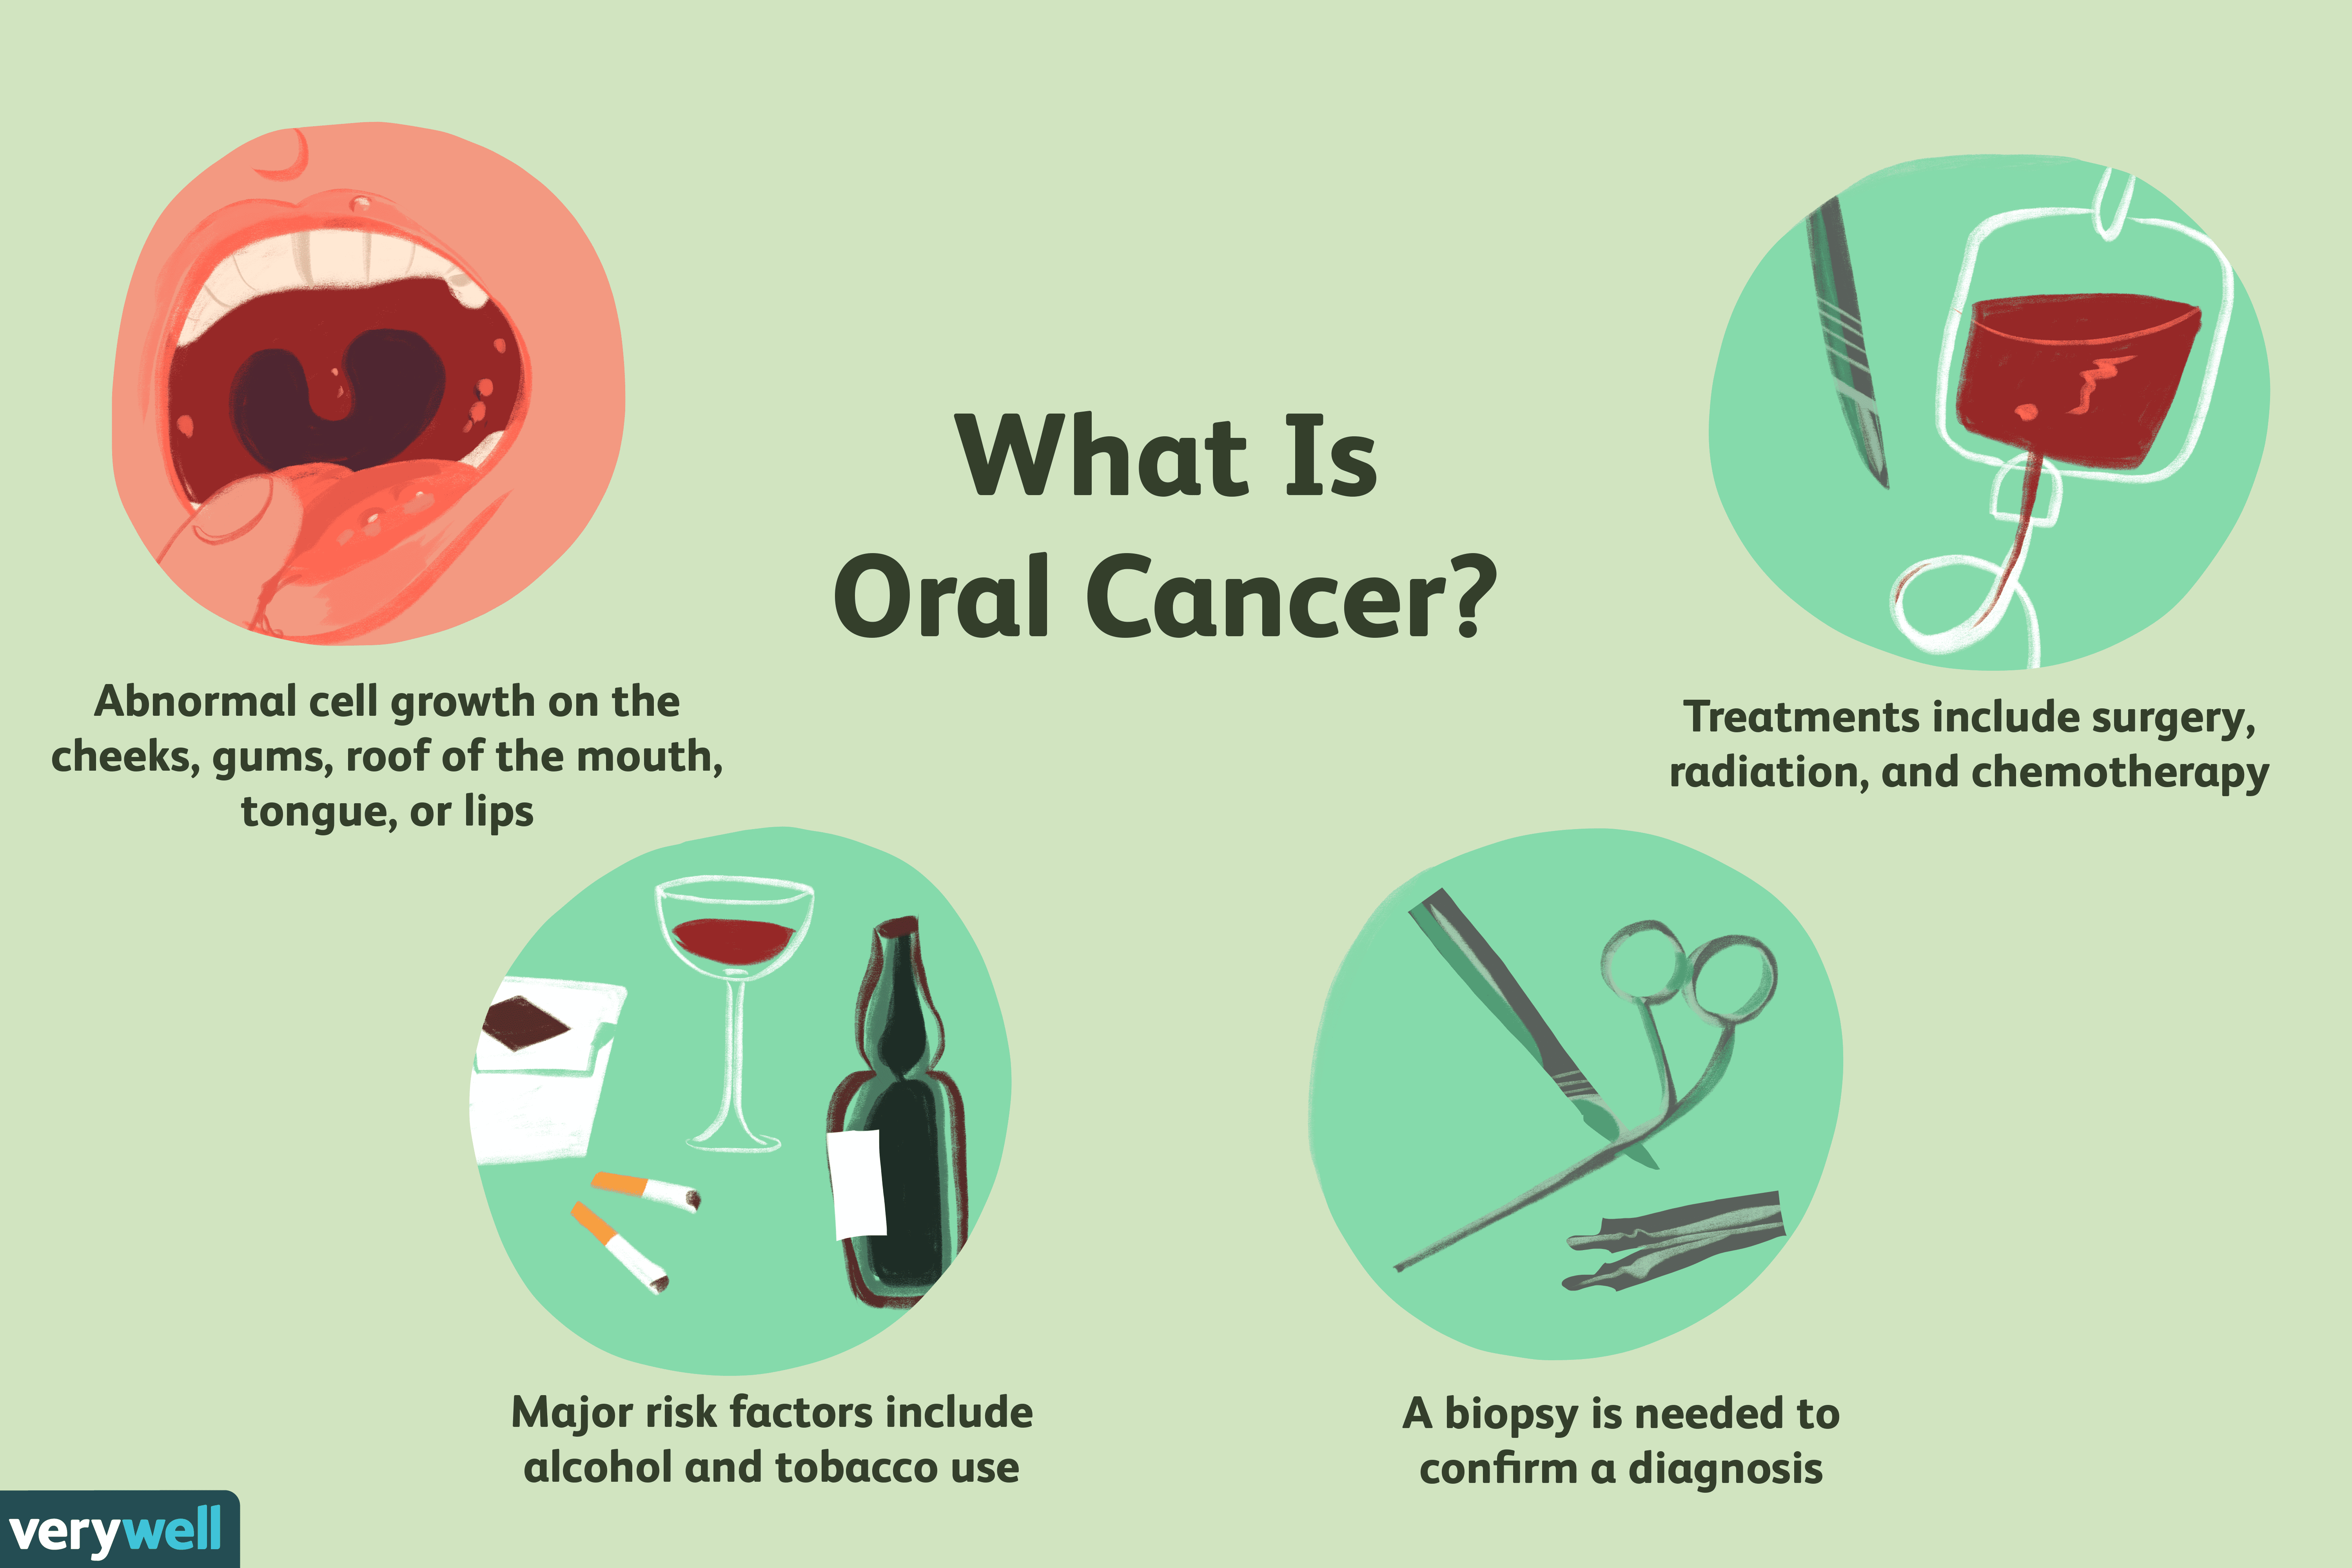 Oral Cancer: Symptoms, Cause, Diagnosis, and Treatment